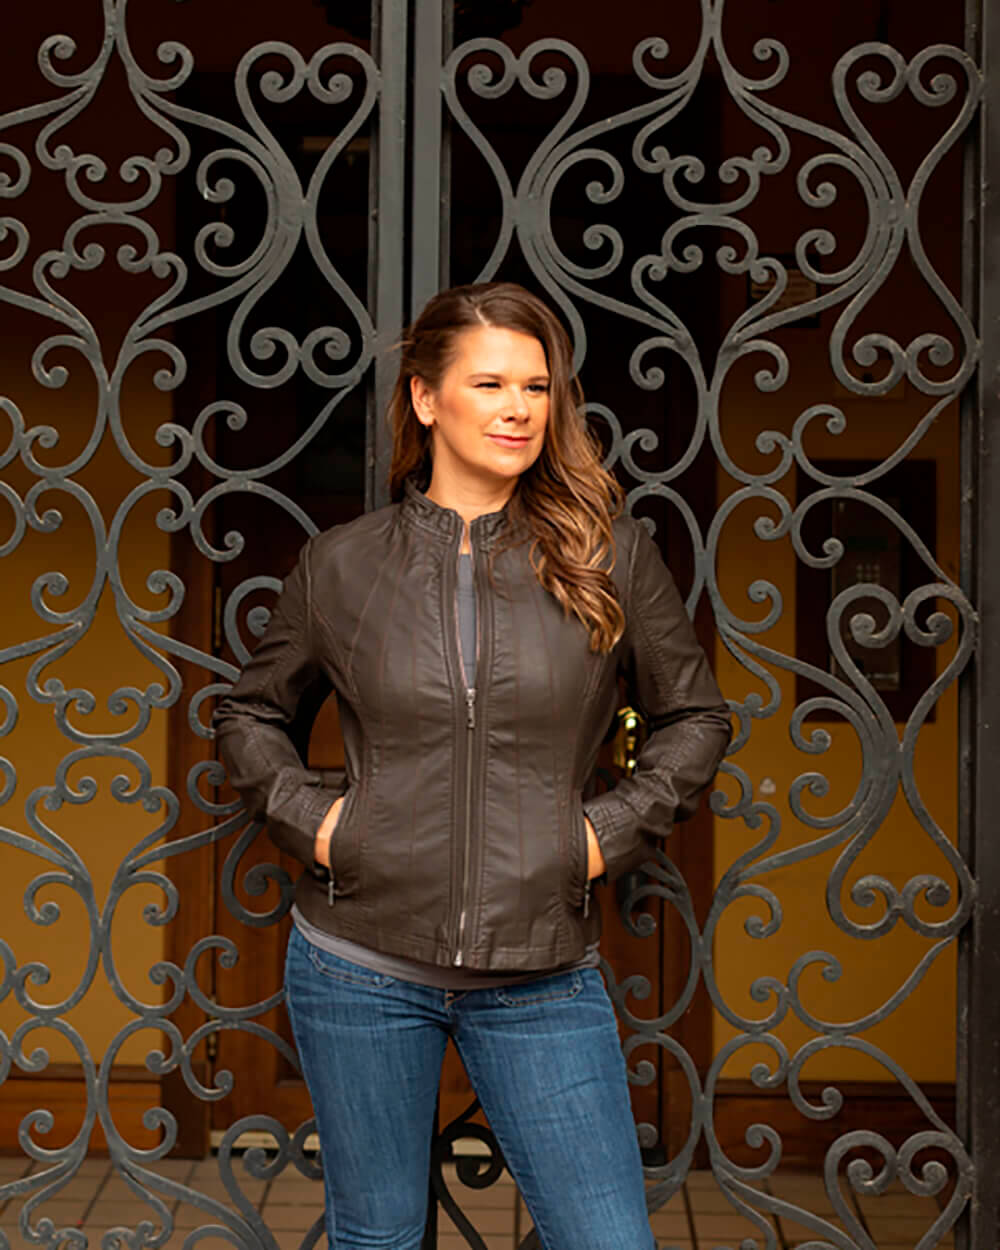 Sonia leather jacket